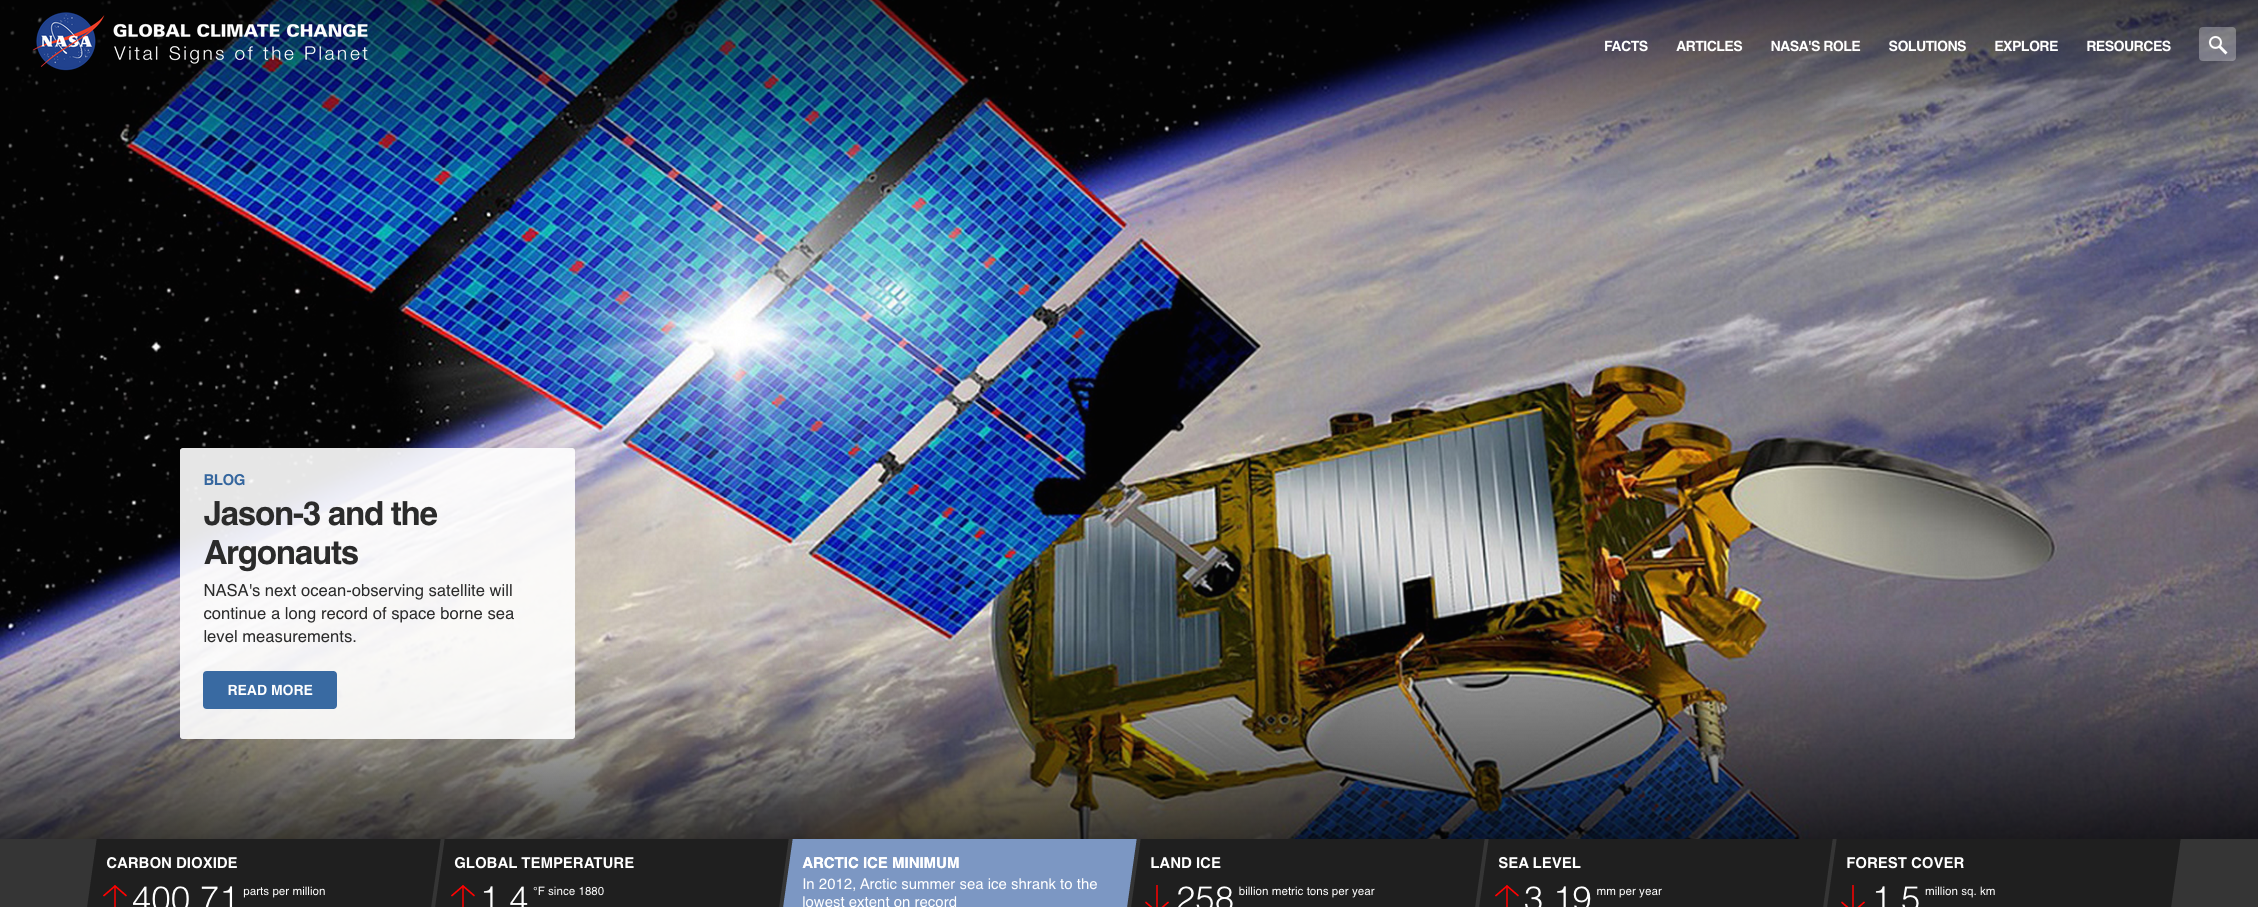 NASA's climate change site -- big and beautiful! Pour yourself a glass of something nice and spend some time here.